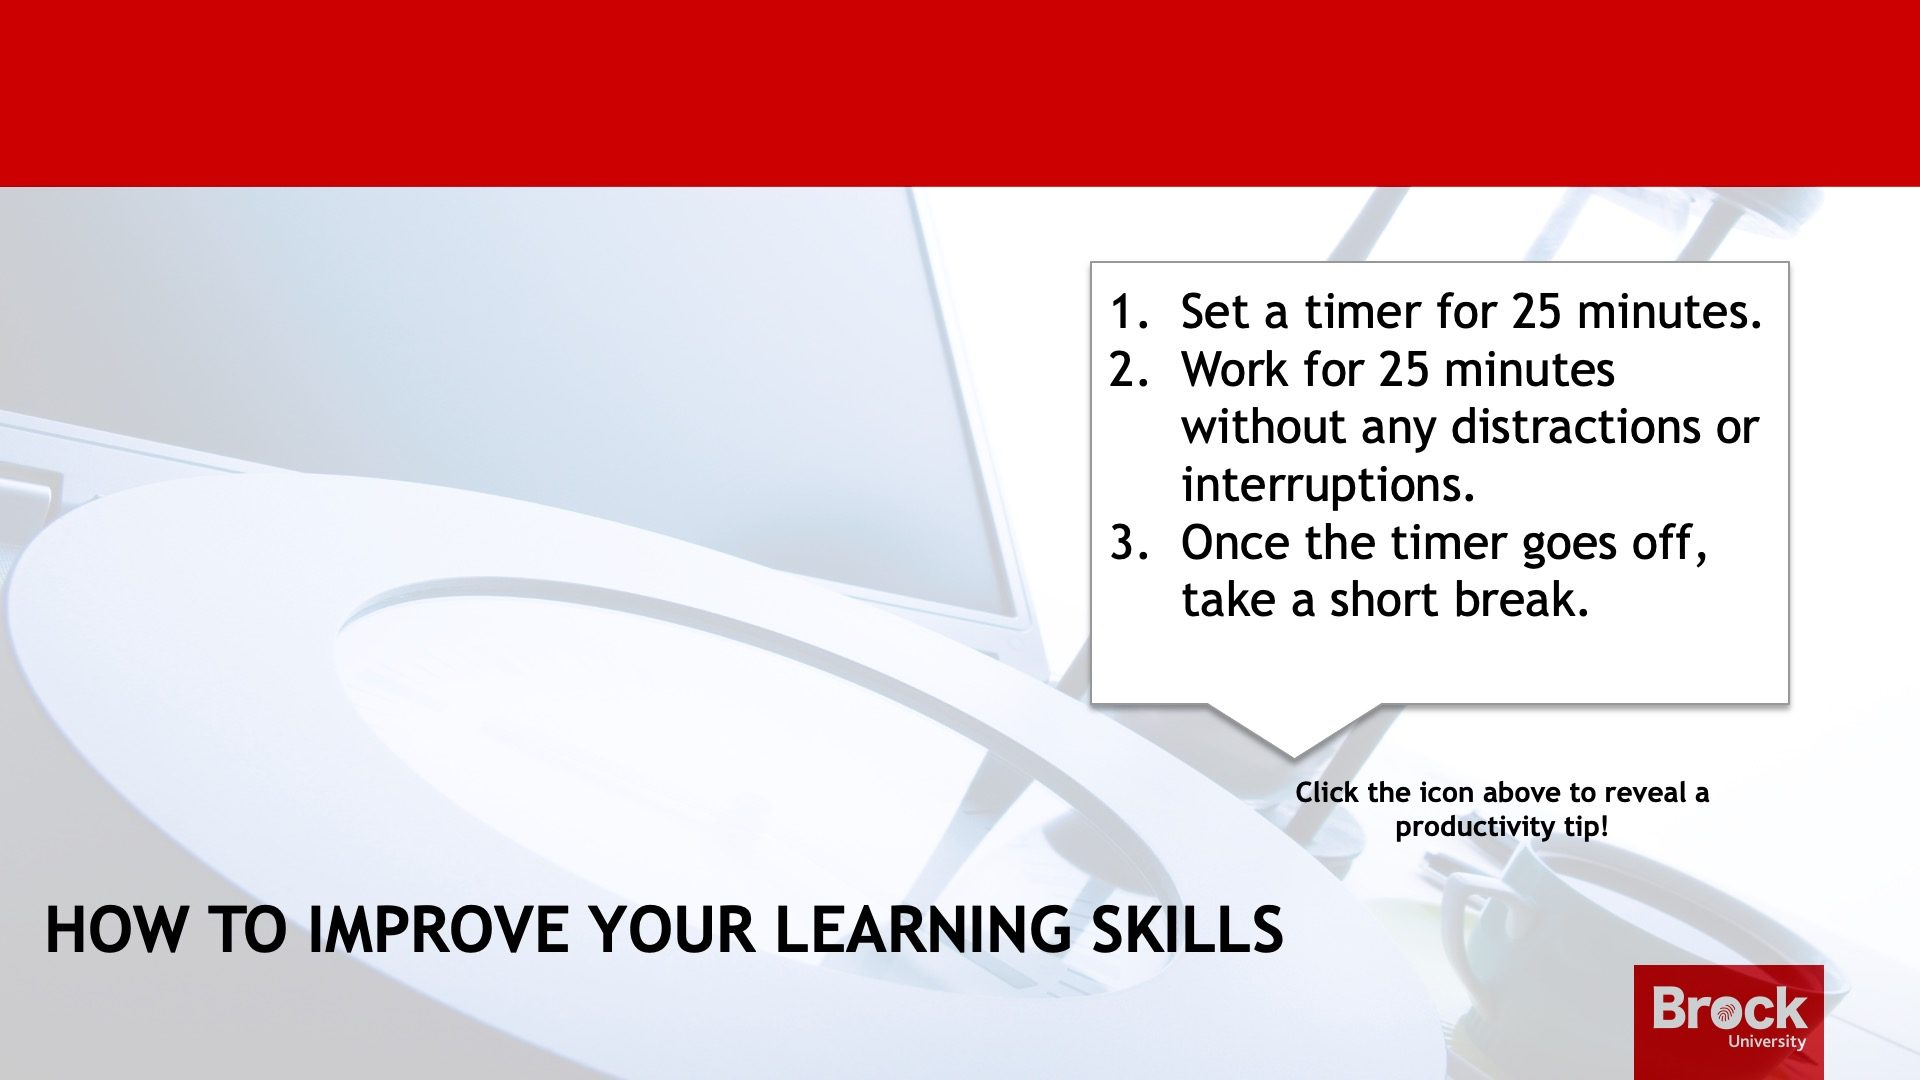 How to improve your learning skills